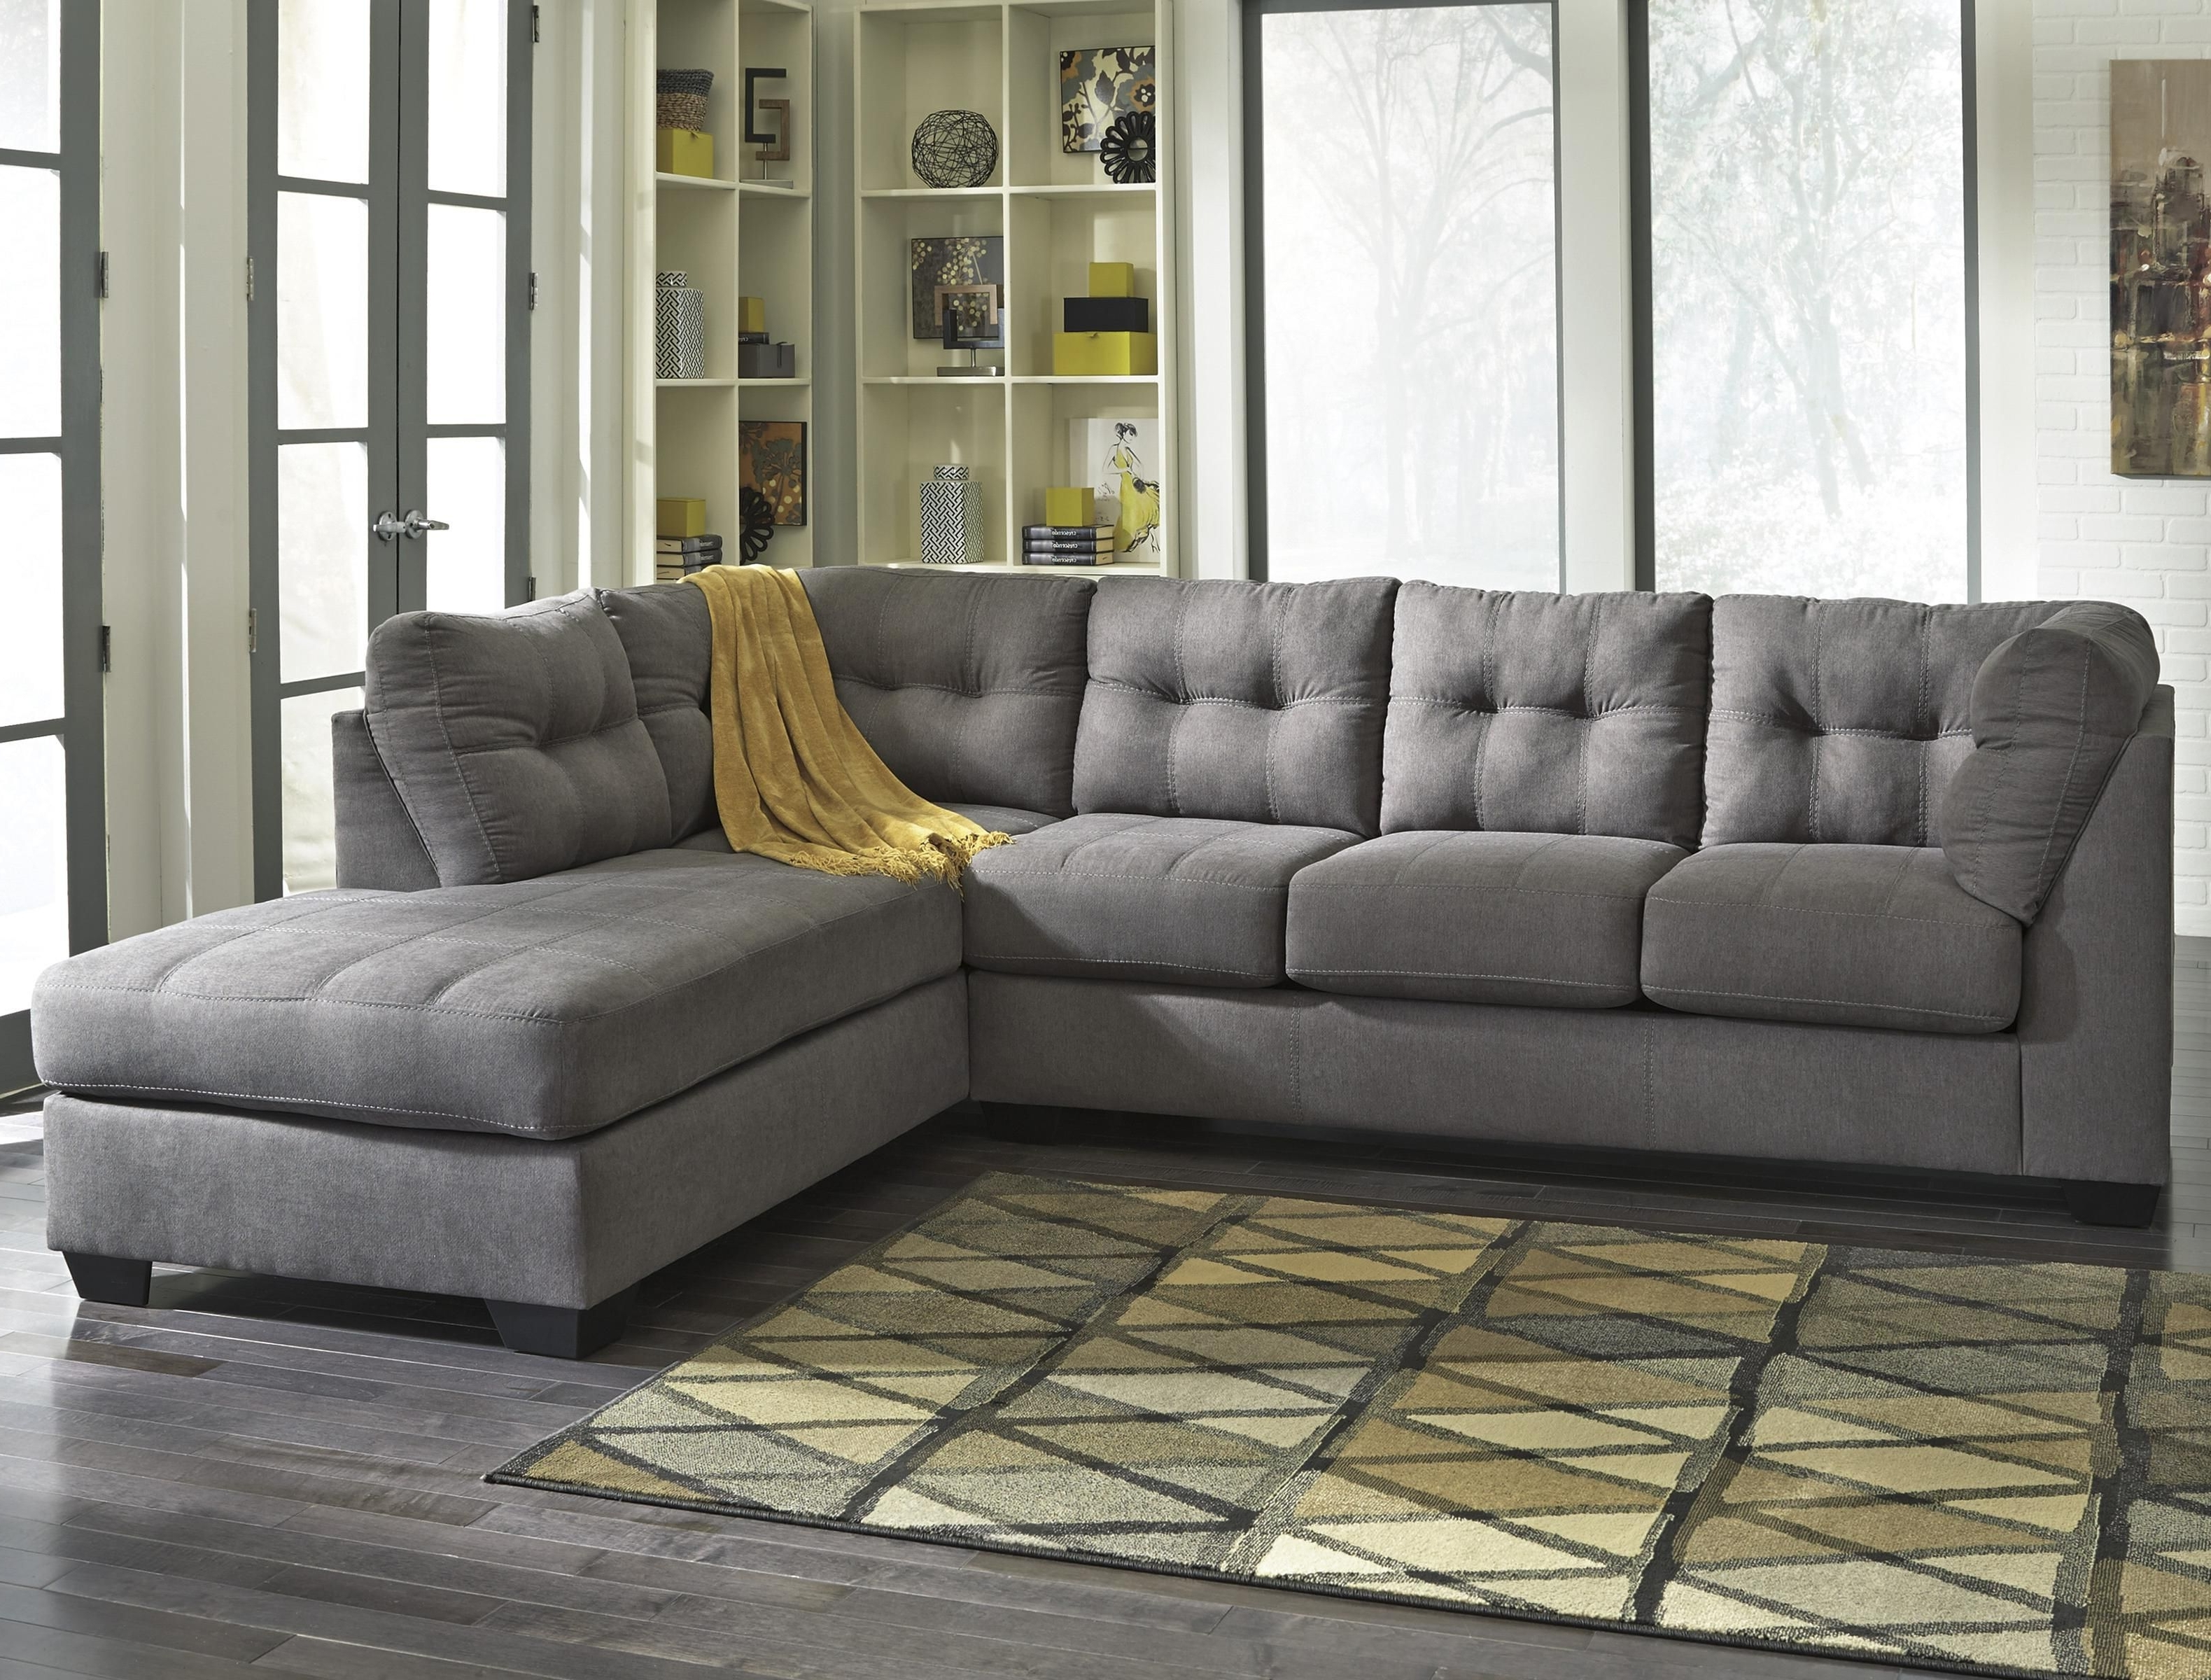 Widely Used Gray Leather Couch Decorating Ideas Fabric Reclining Sectional For Gray Sectionals With Chaise (View 14 of 15)